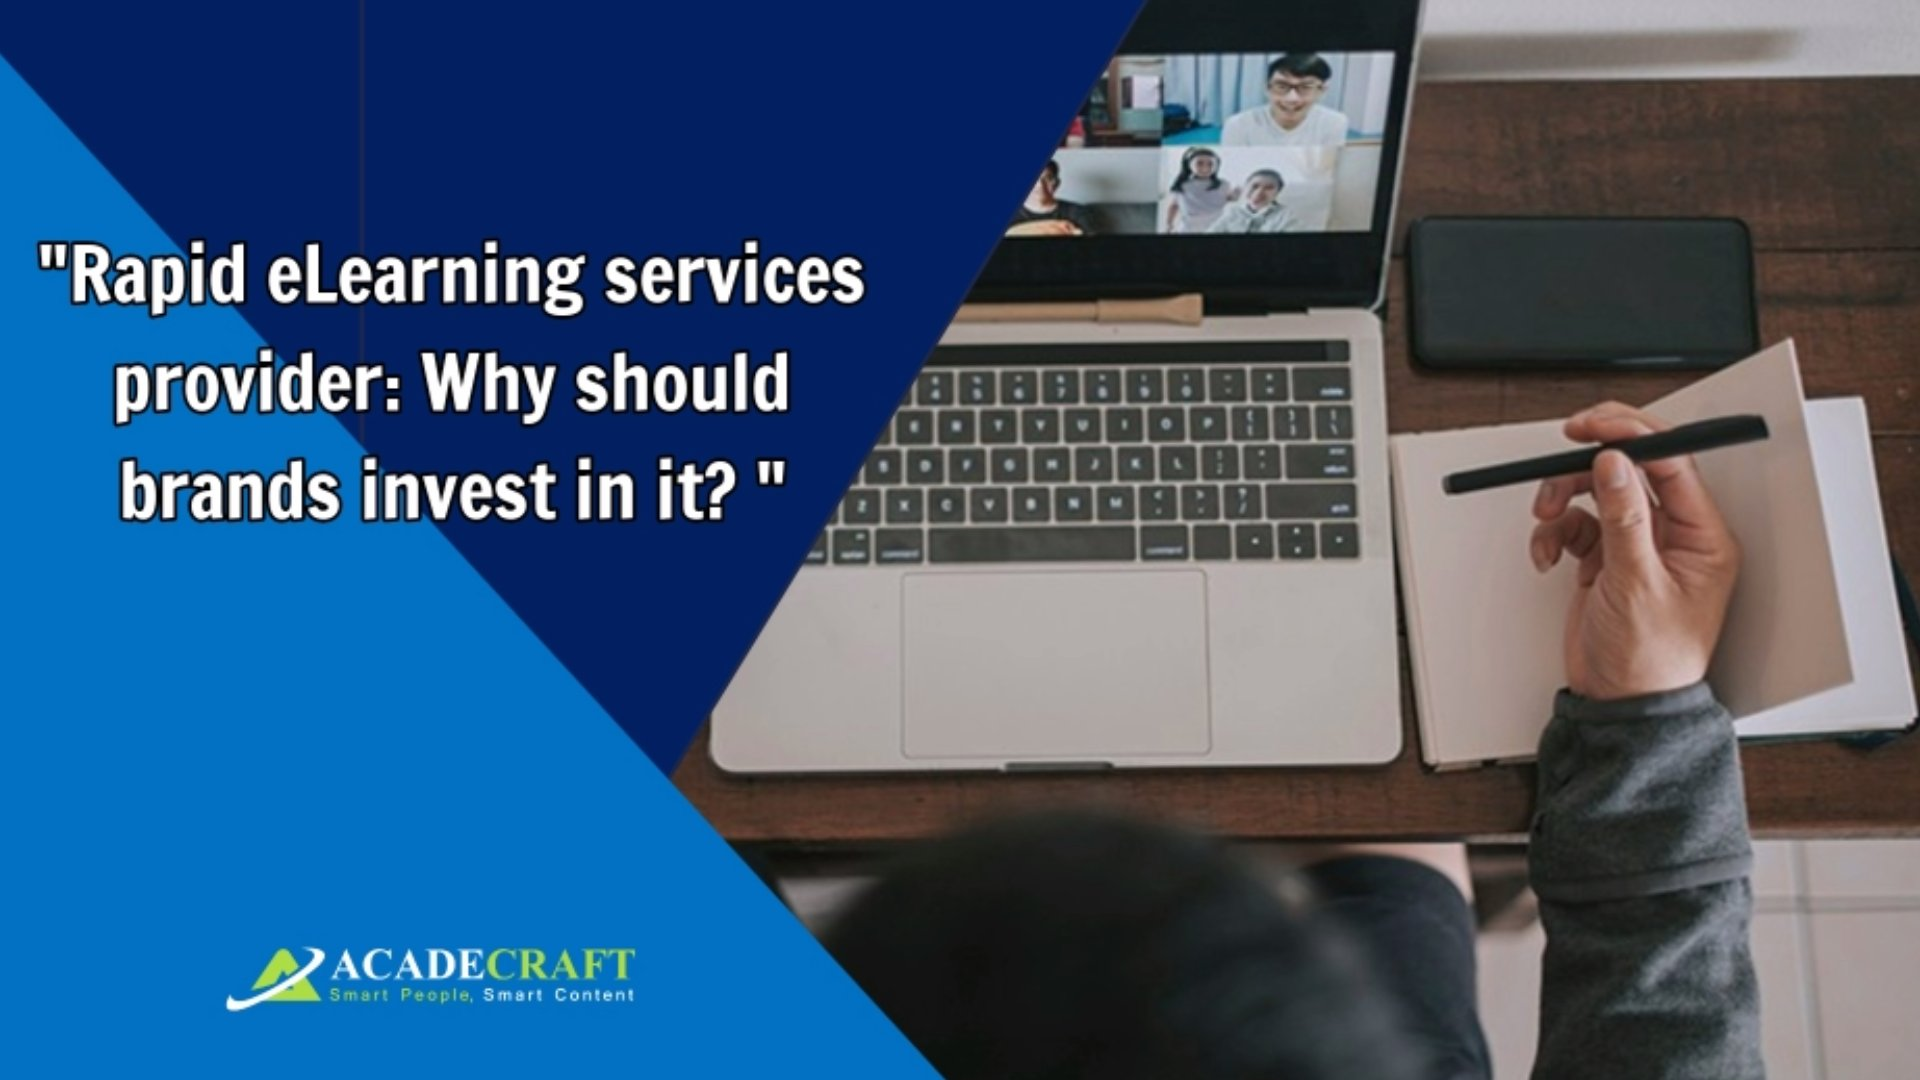 Rapid eLearning Services Provider: Why Should Brands invest in it?